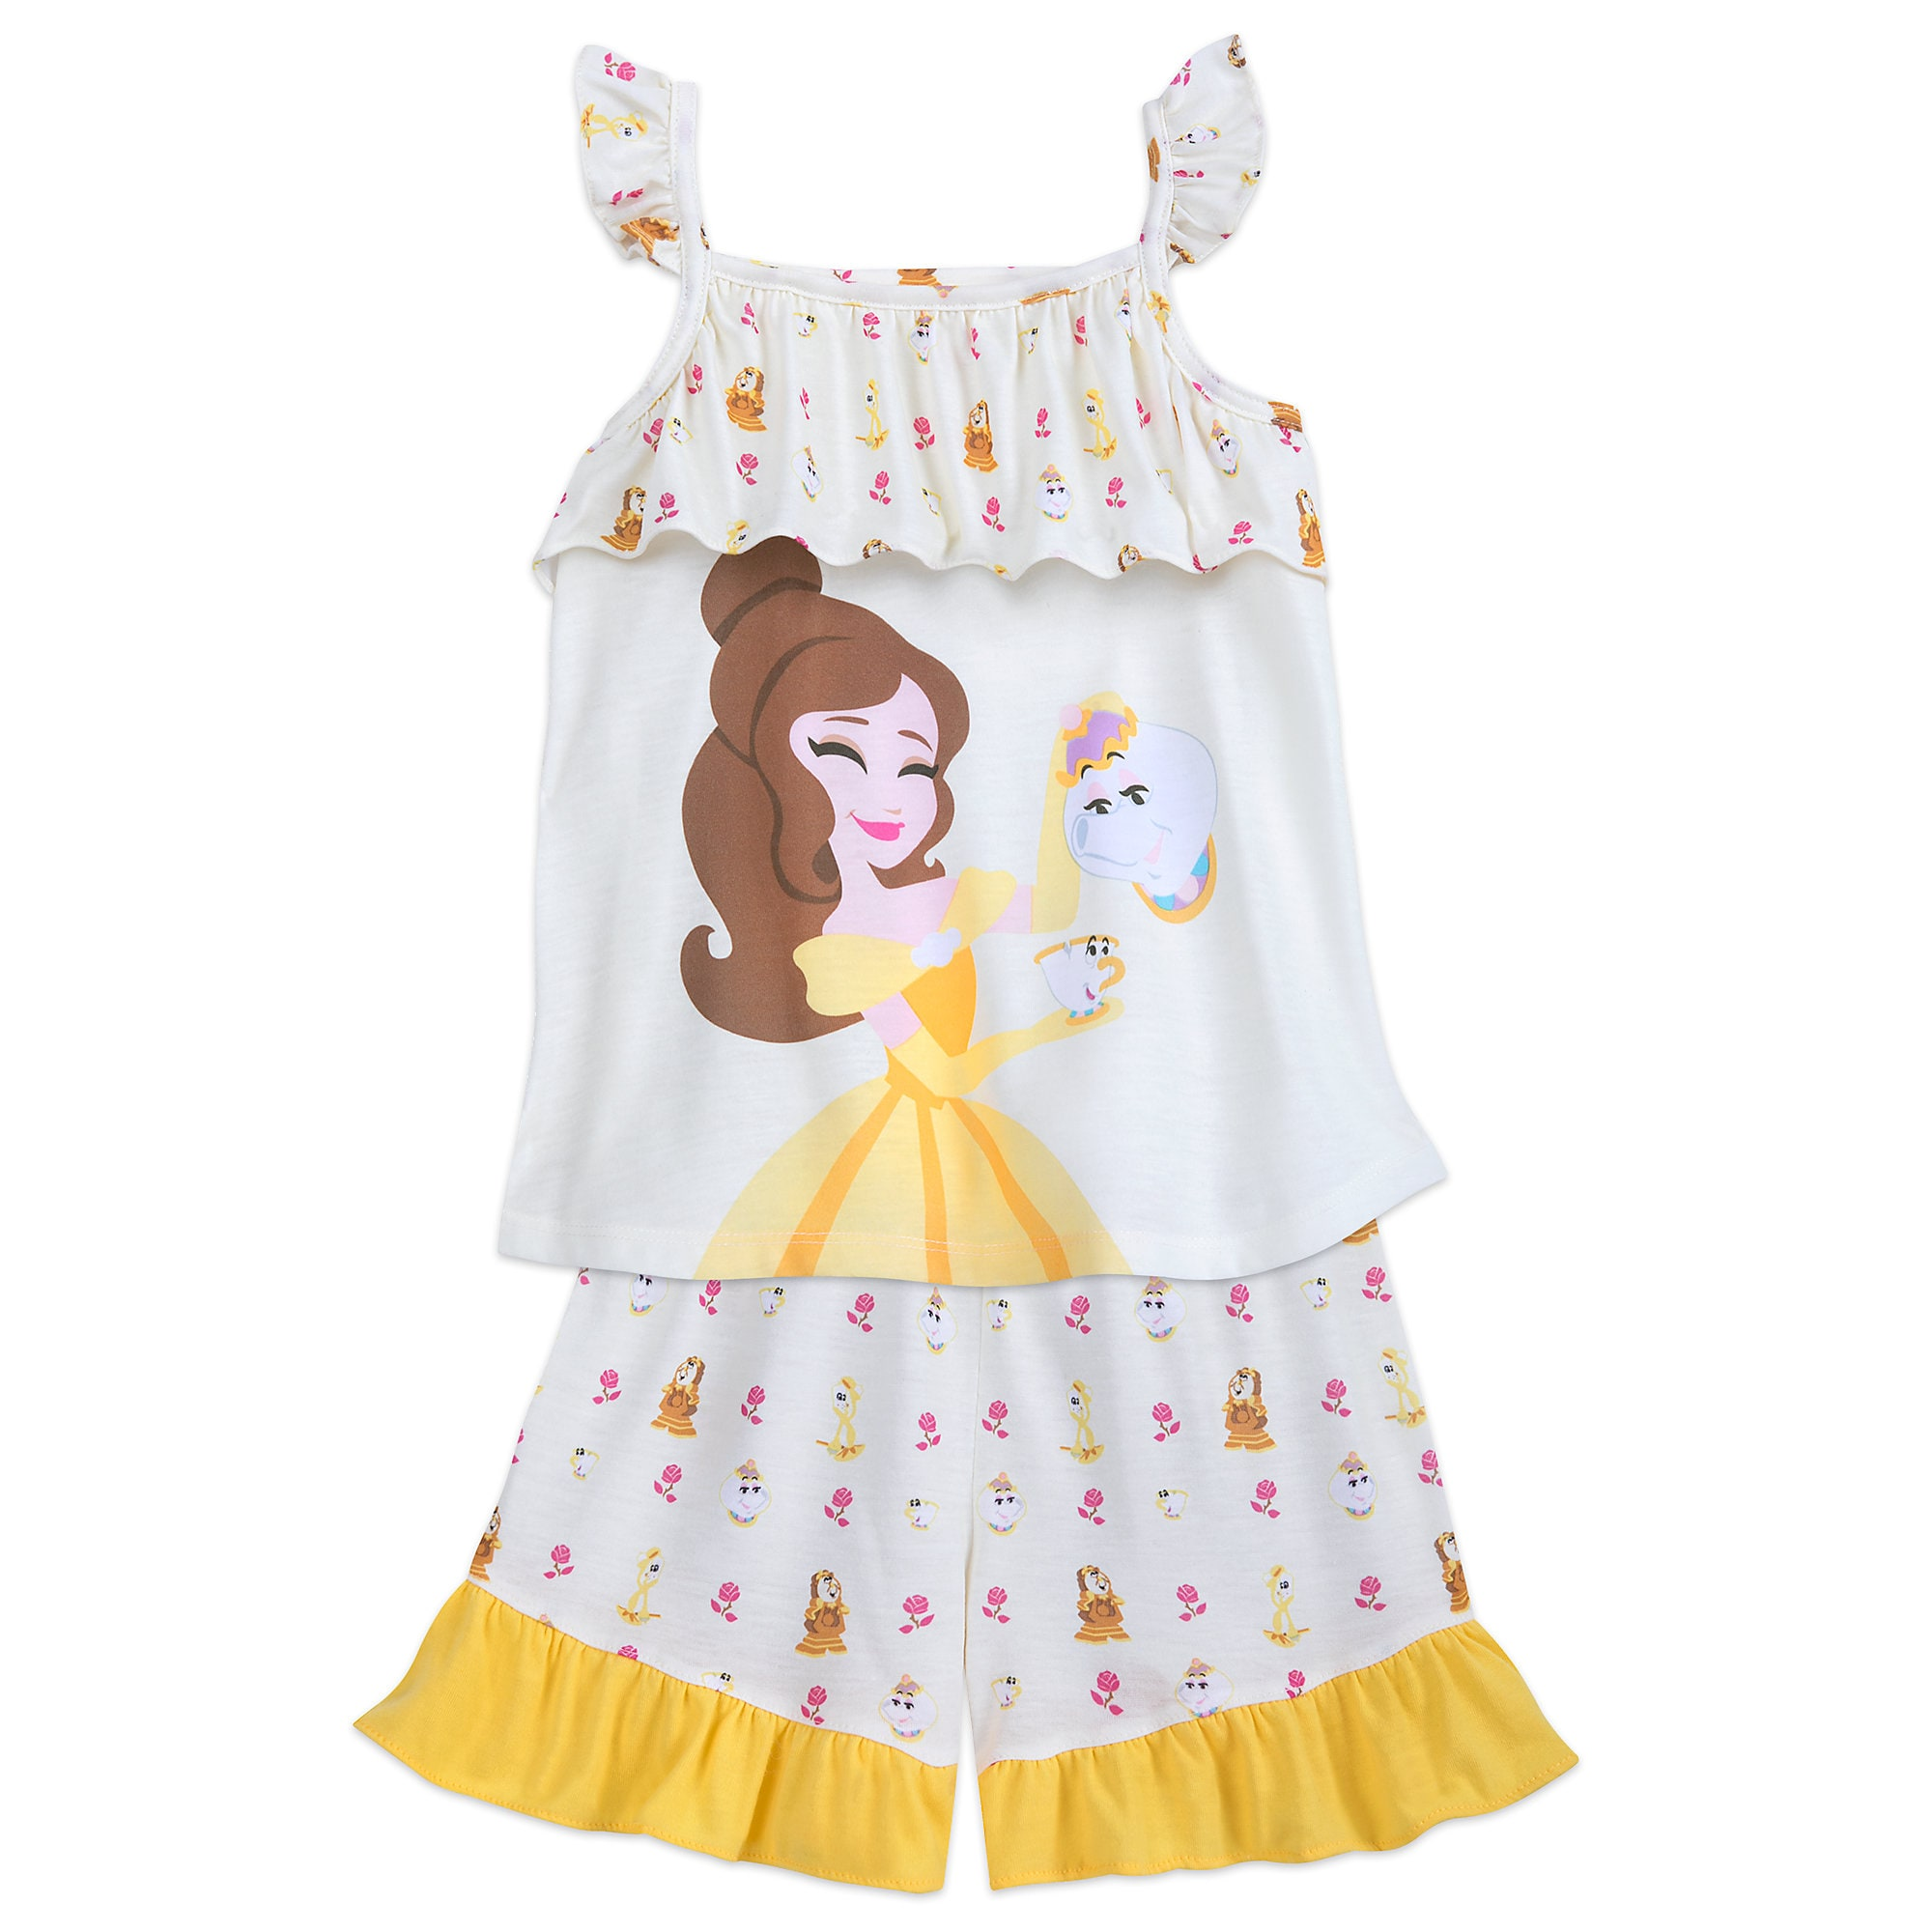 Belle Pajama Set for Girls